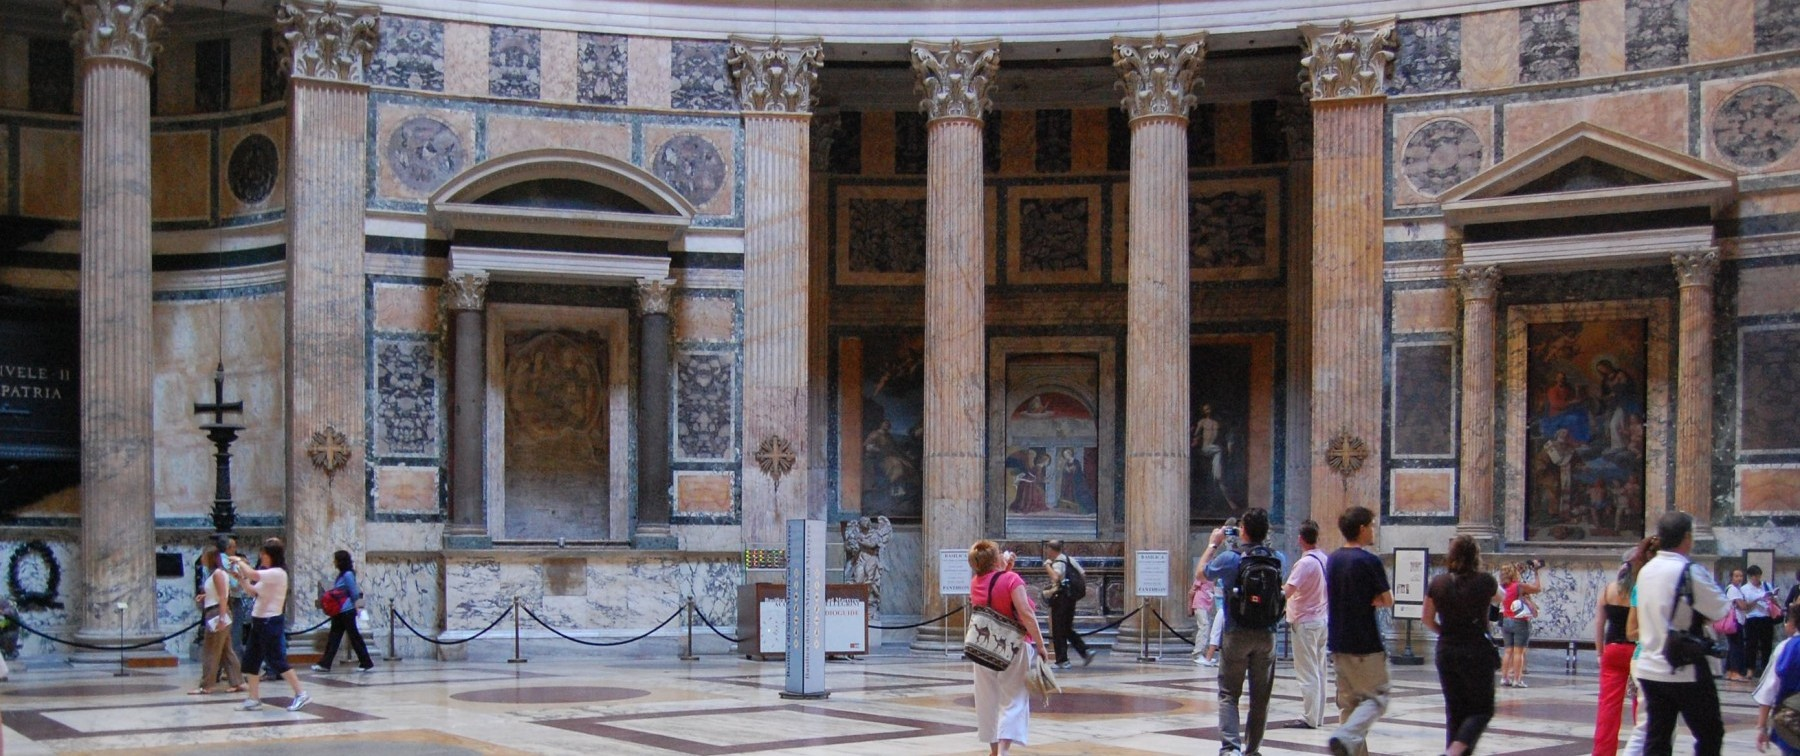 Go inside the Pantheon